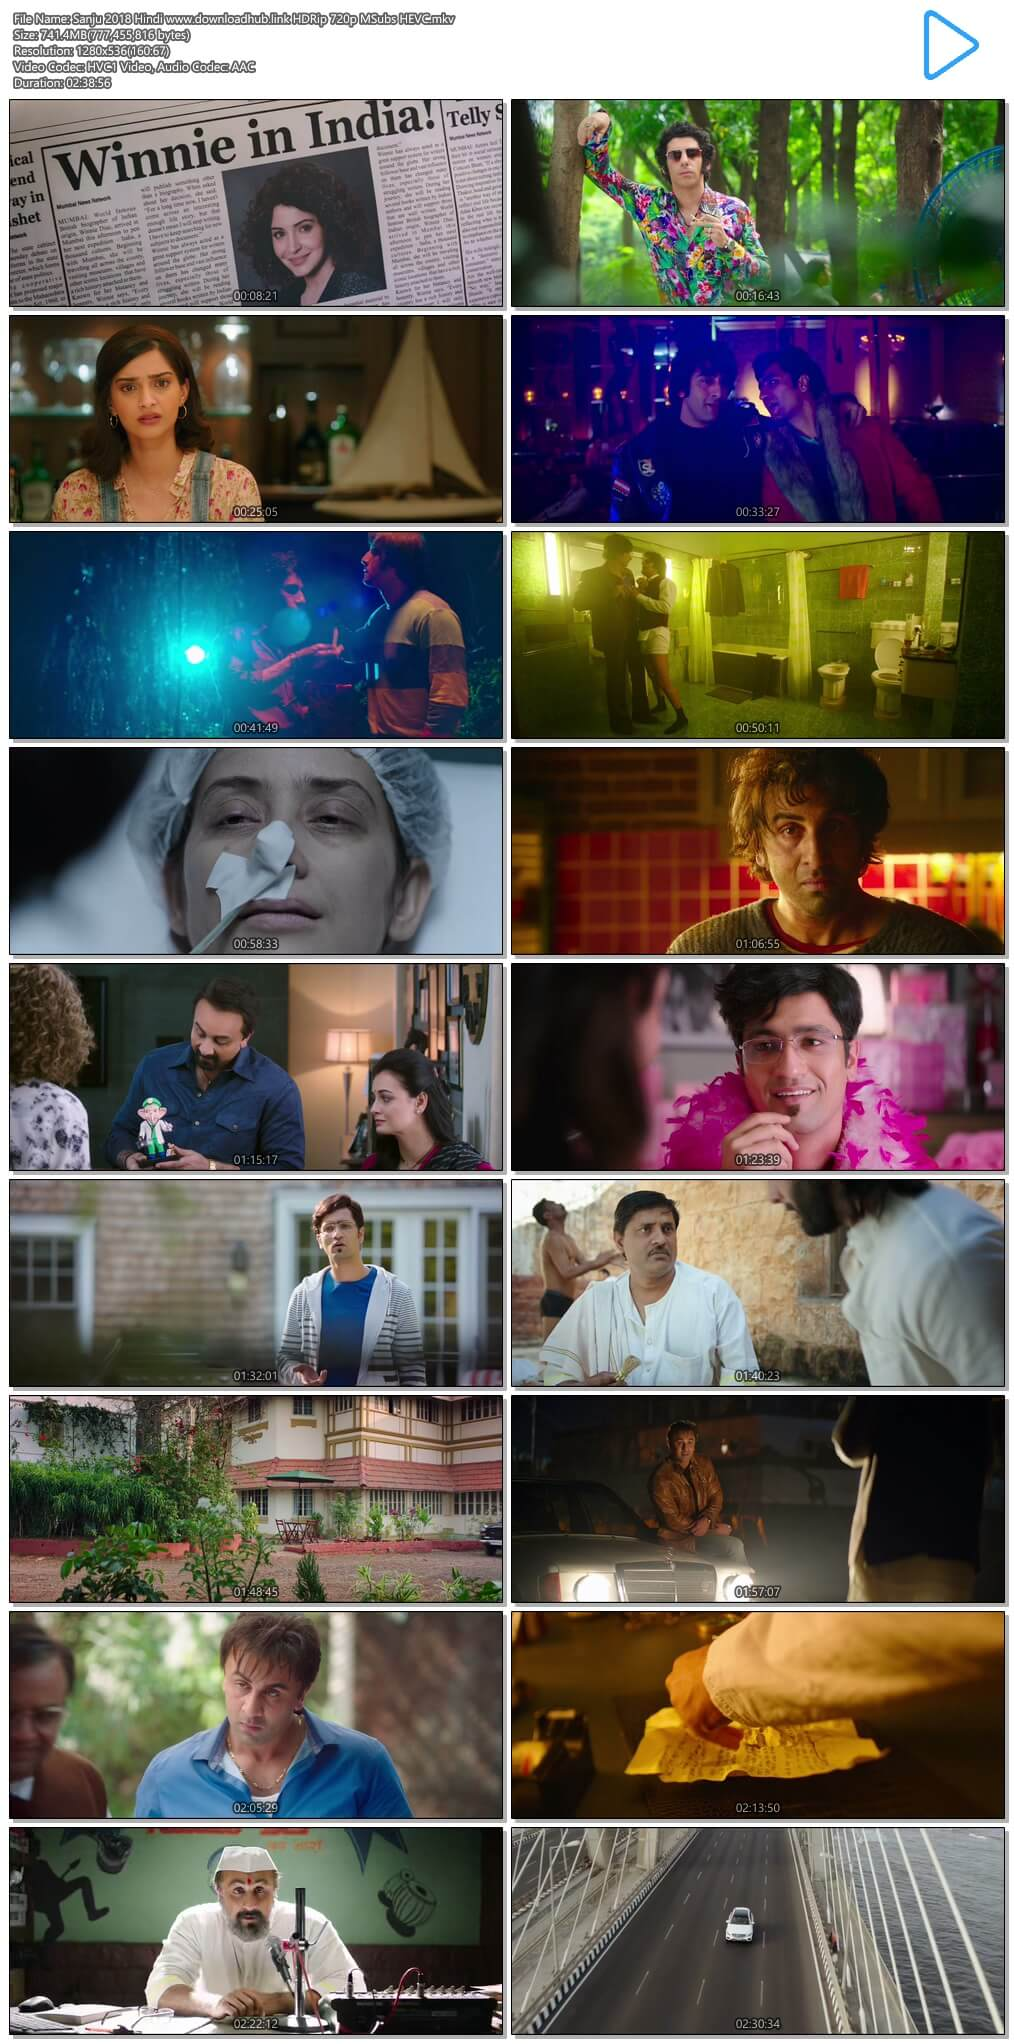 Sanju 2018 Hindi 700MB HDRip 720p MSubs HEVC